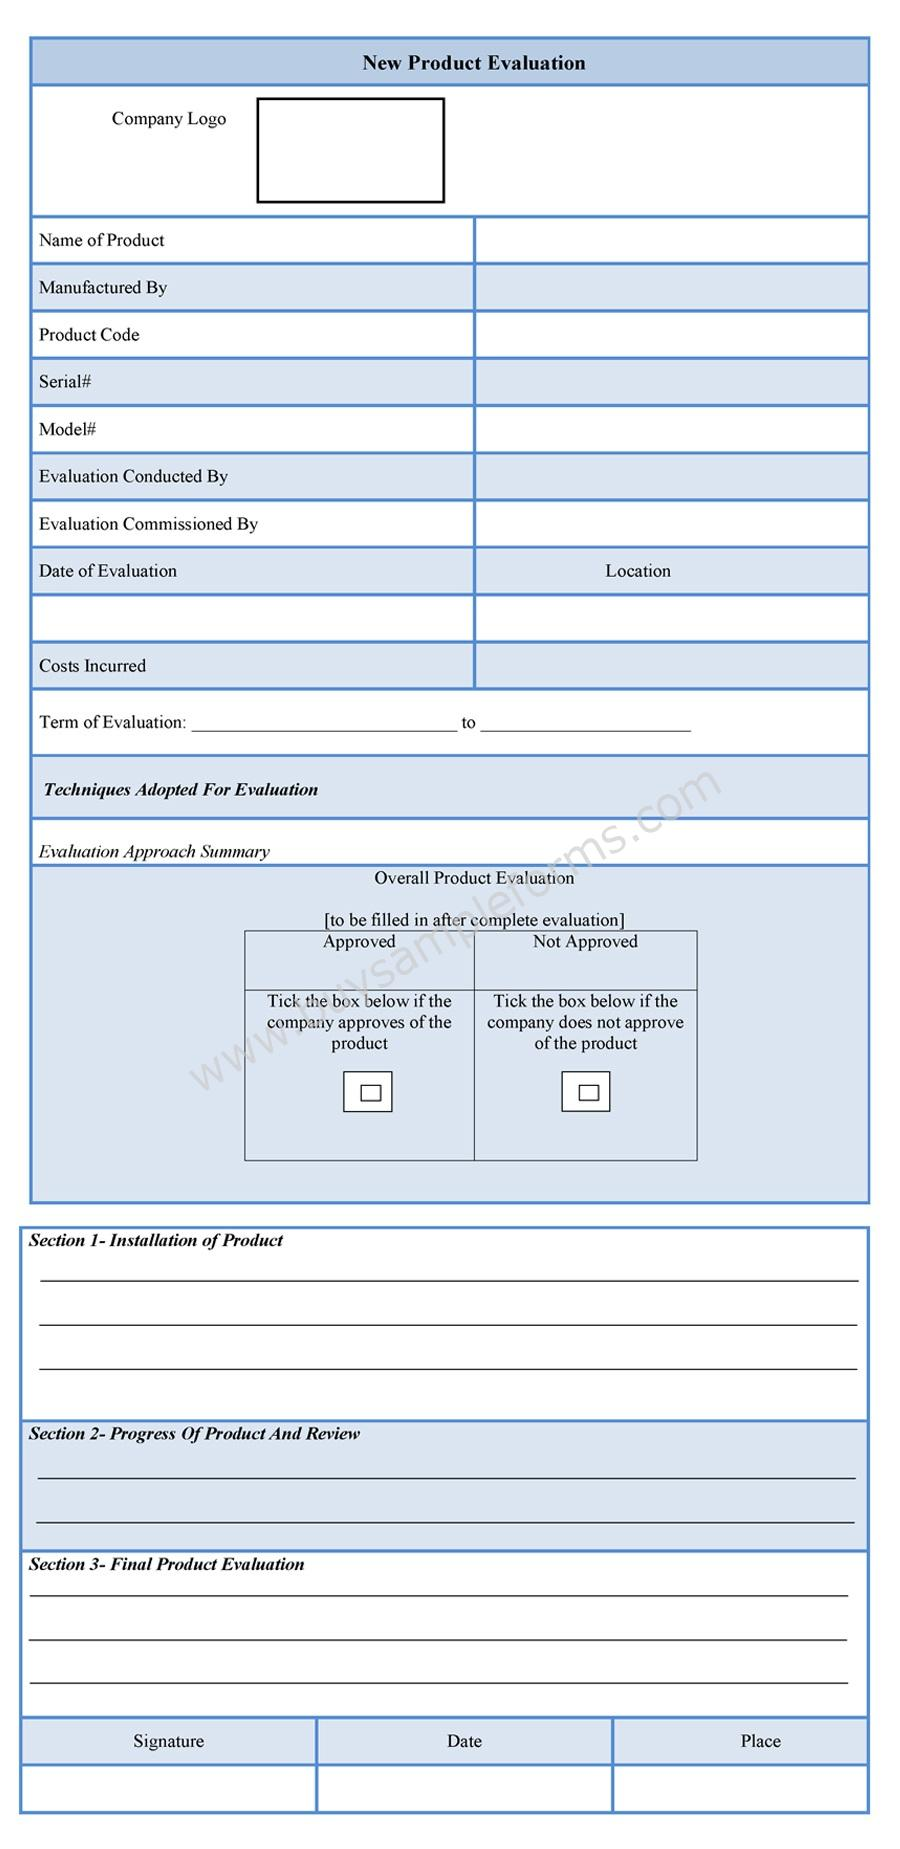 Learning Training Development Hr Council New Product Evaluation Form Sample Forms